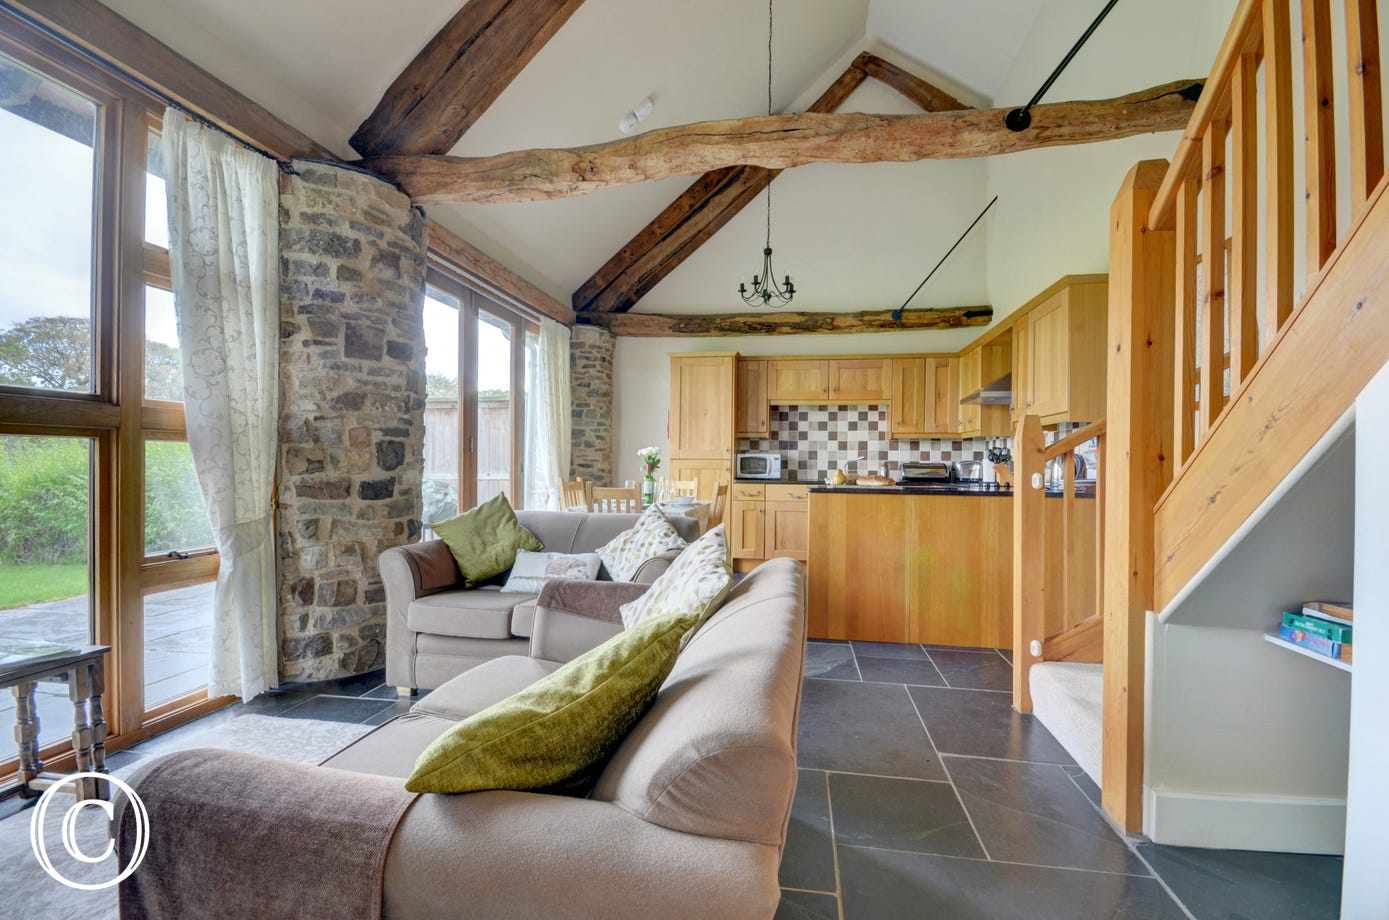 An expanse of glass windows and doors brings the outside in, and the open plan living area features exposed stonework and vaulted oak beams